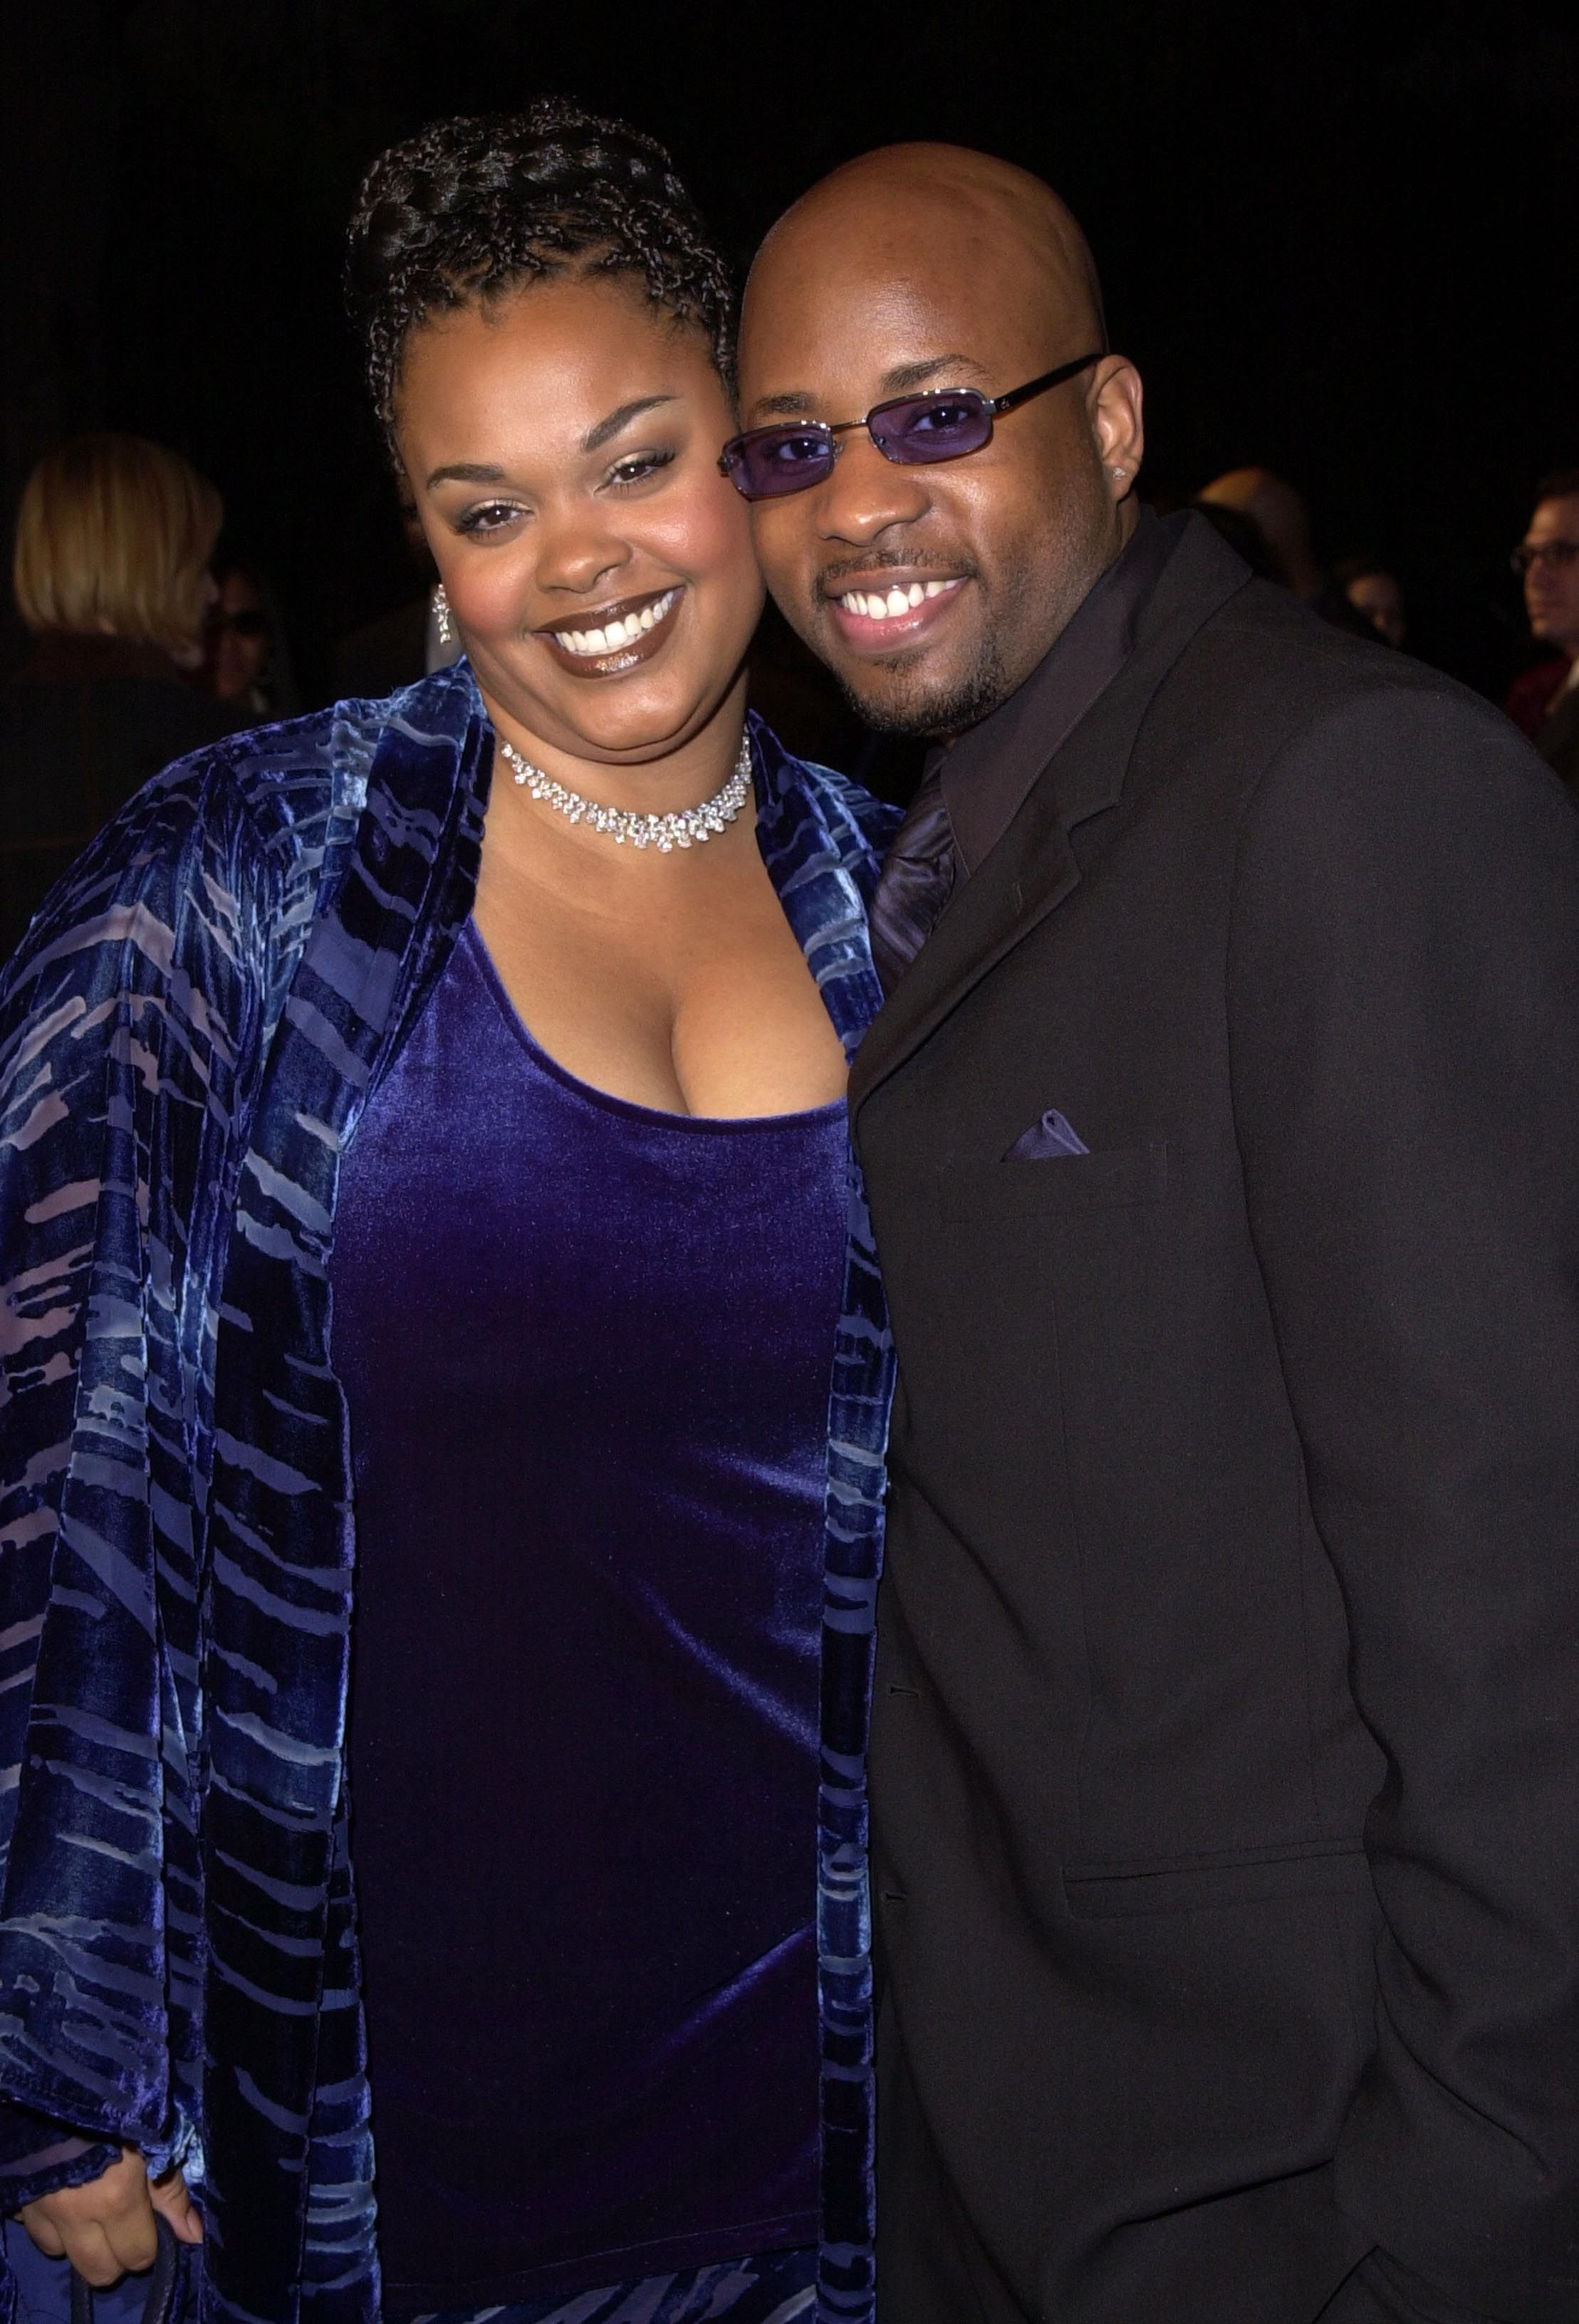 Jill Scott & husband Lyzel Williams at the 32nd Annual NAACP Image Awards in 2001 | Source: Getty Images